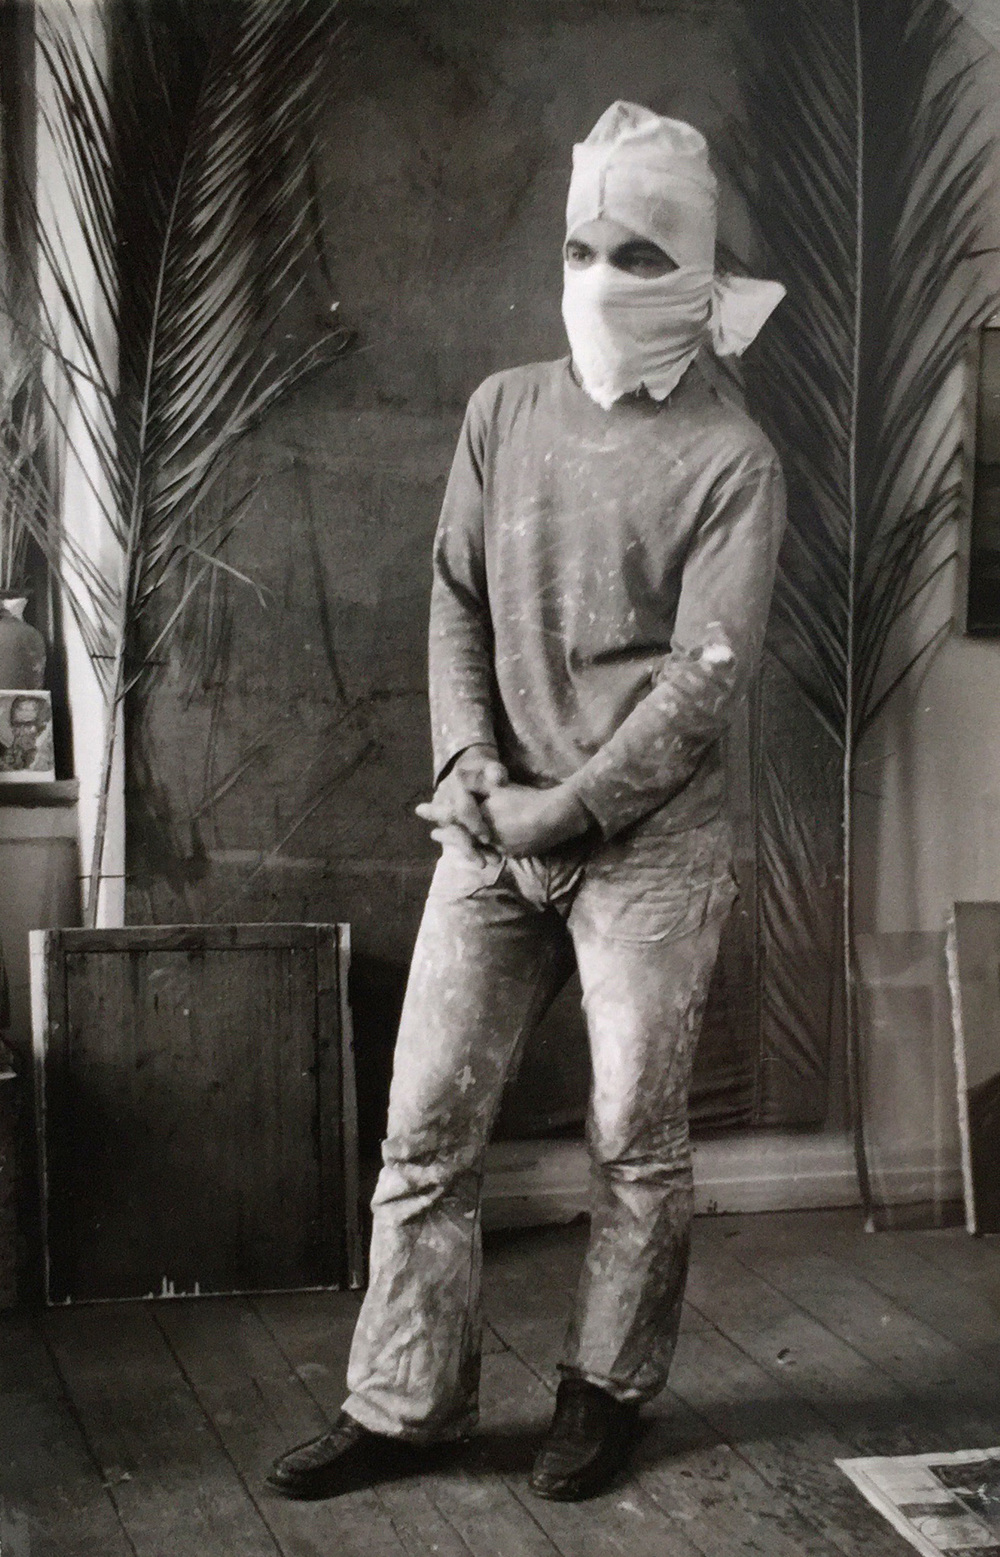 shot in my studio in the plaka , athens, greece:a construction worker i photographed then painted, 1975